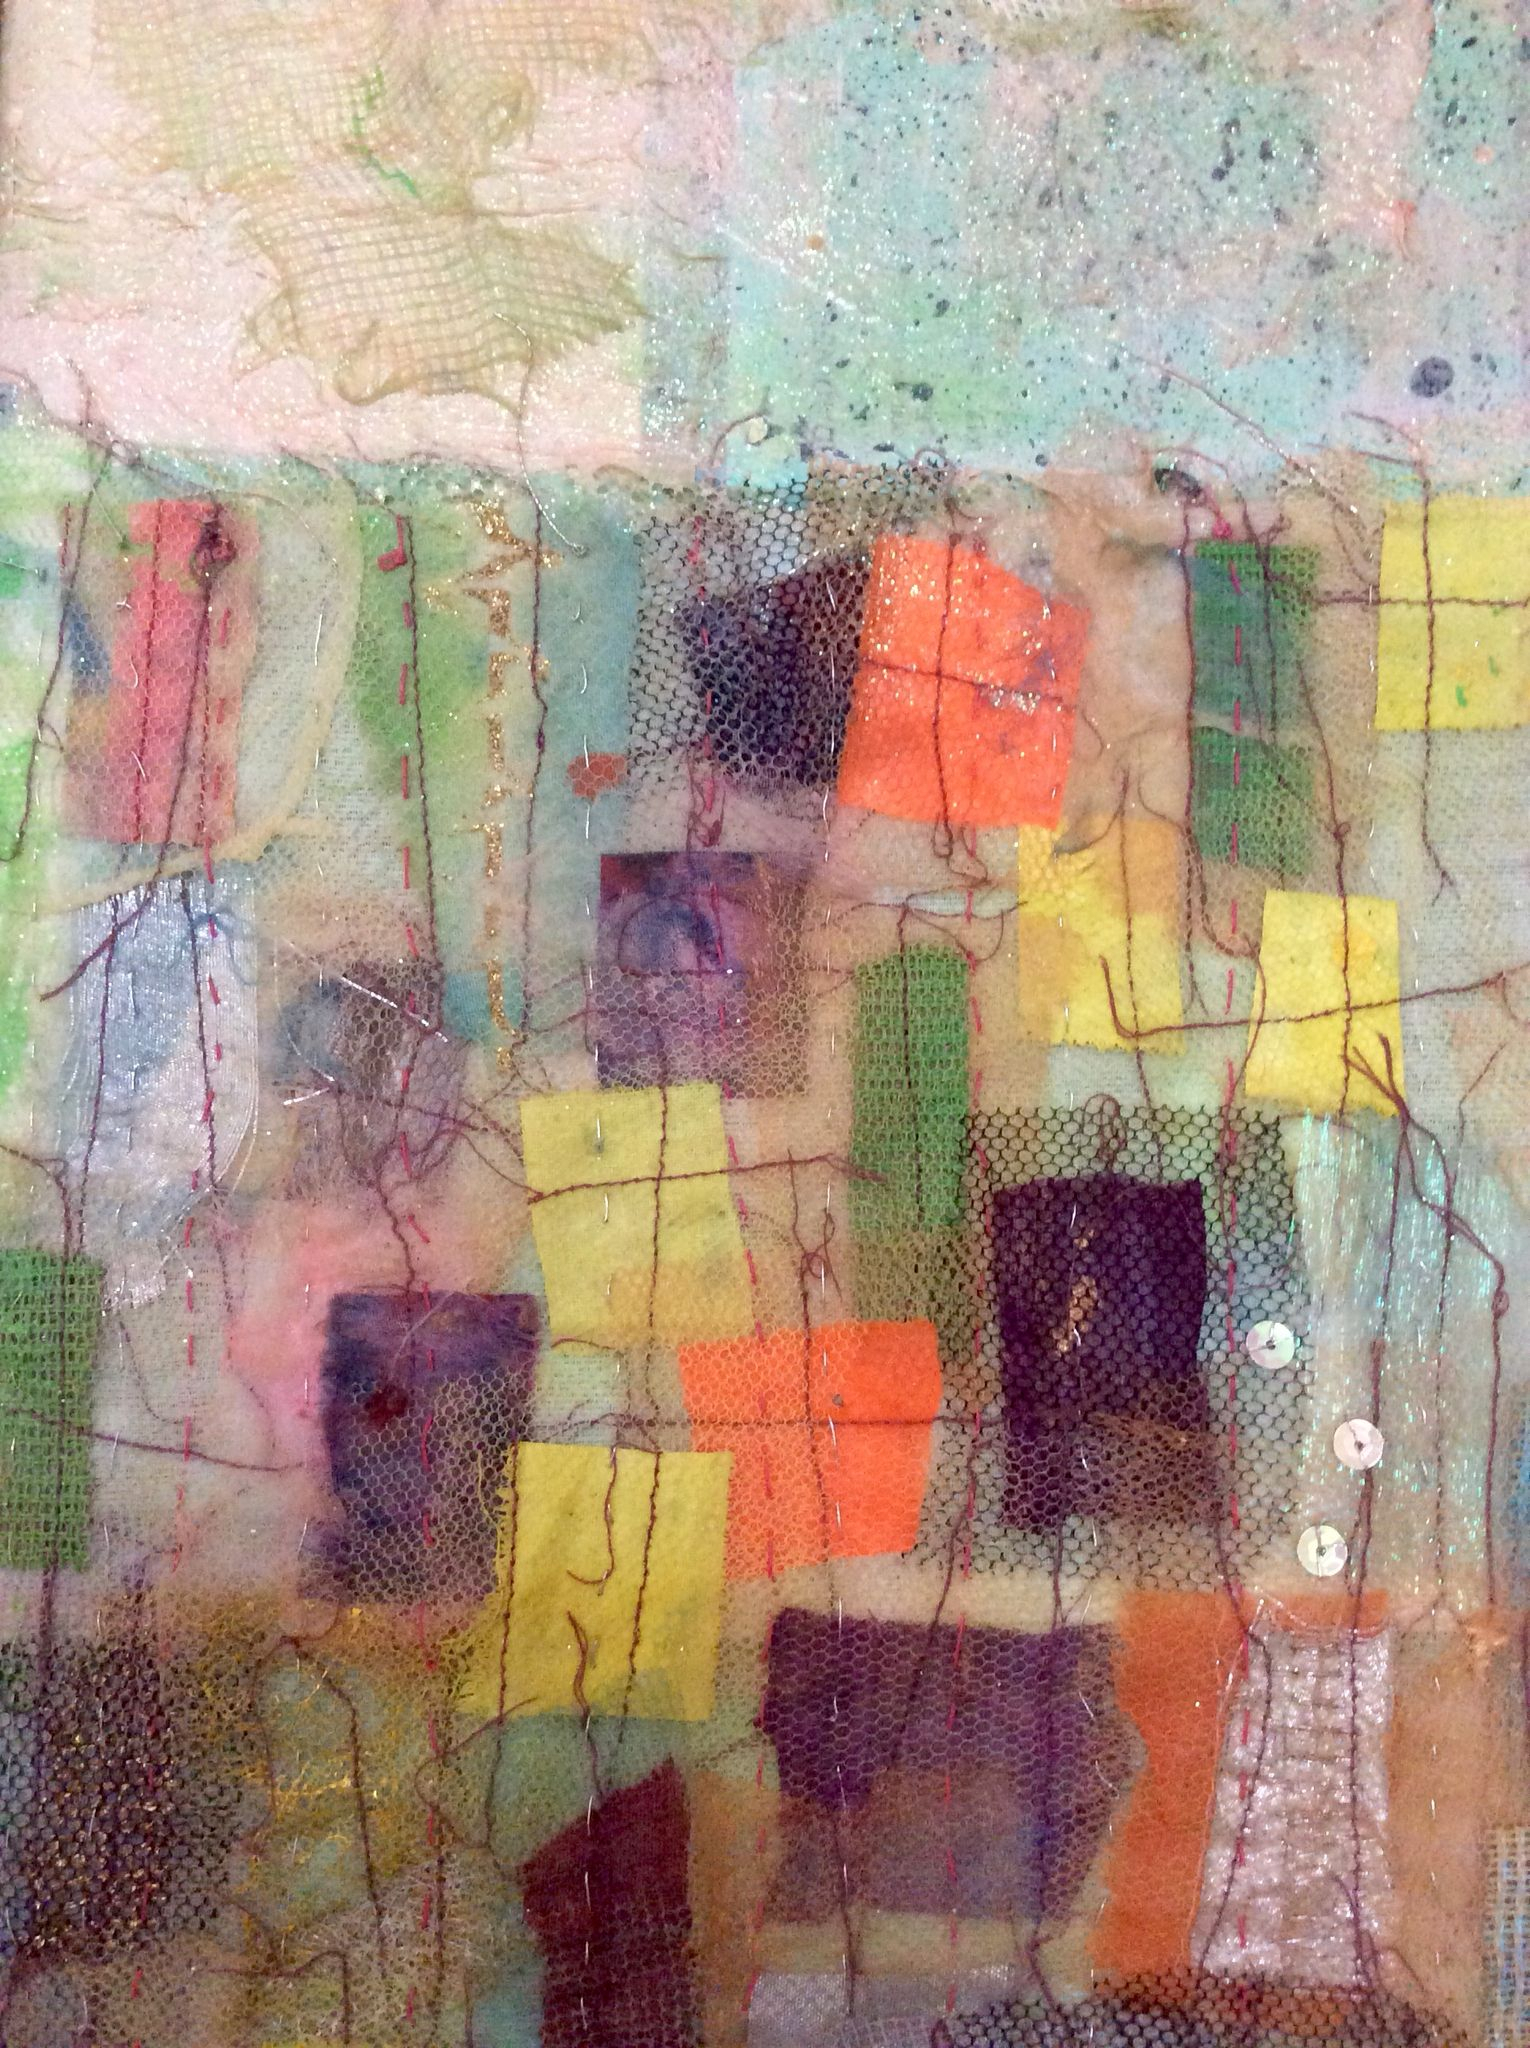 Pinfrancesco Basile On Abstract Art | Art Journal Throughout Recent Blended Fabric Aladin European Wall Hangings (View 15 of 20)